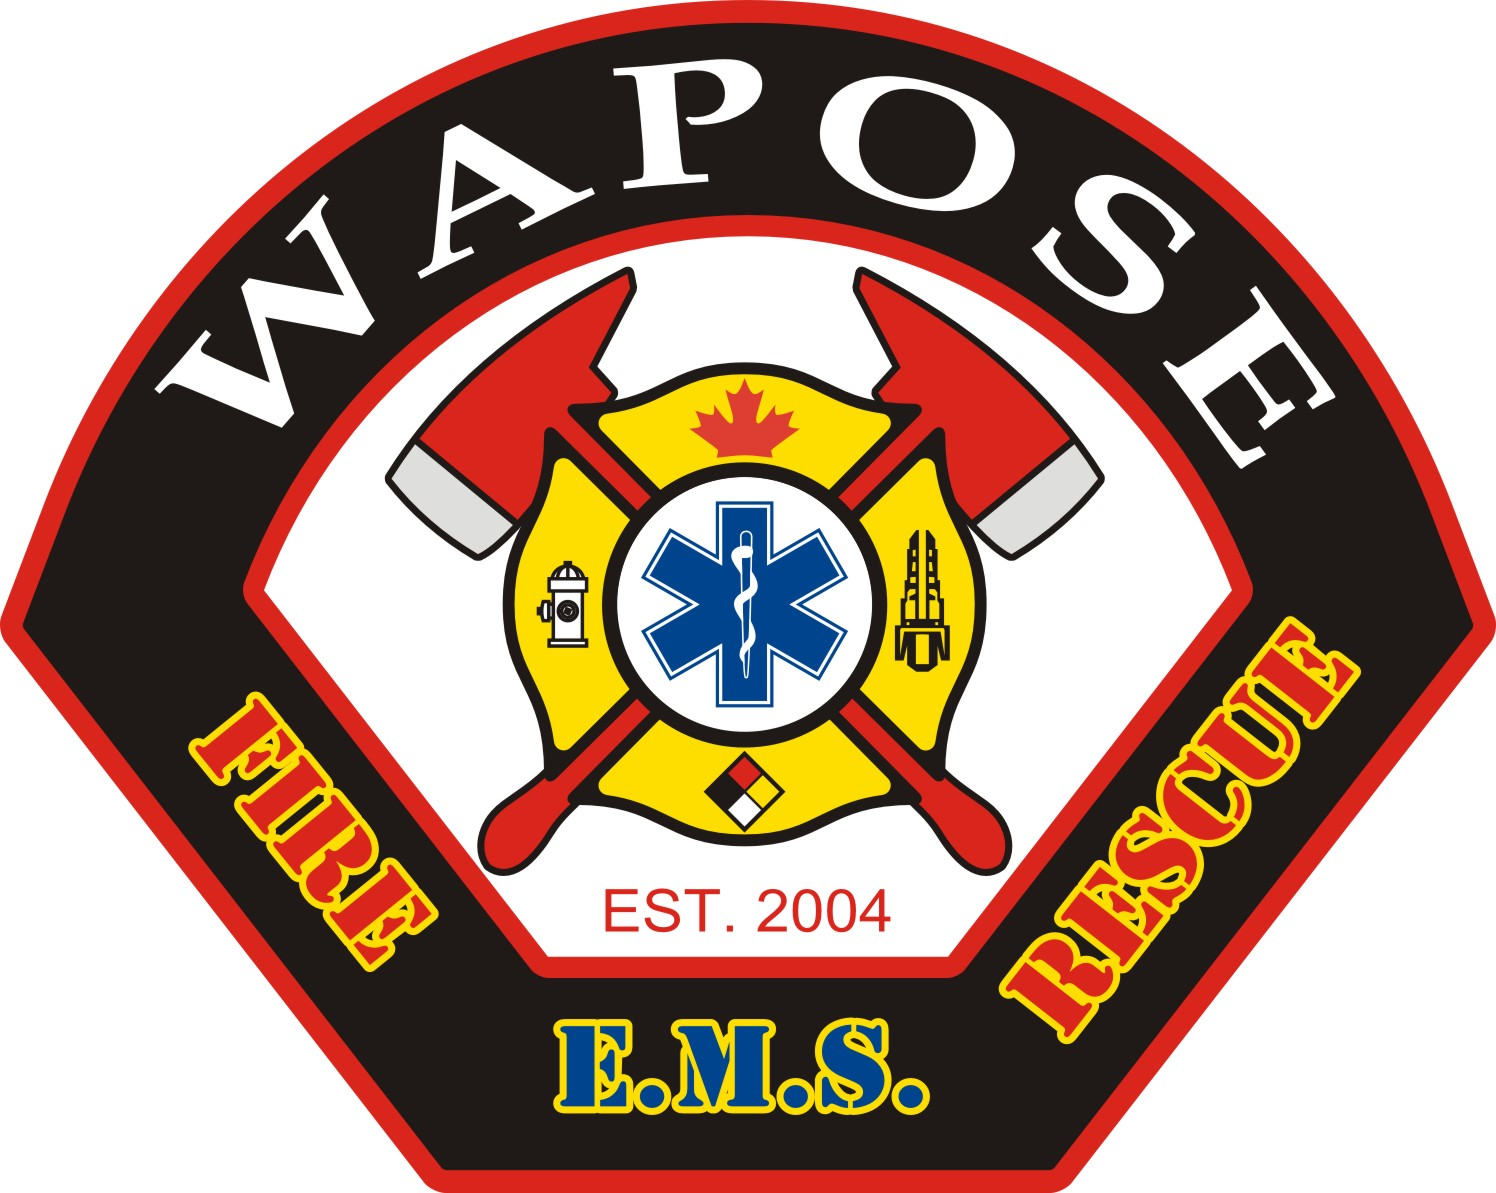 Wapose Emergency Services Inc